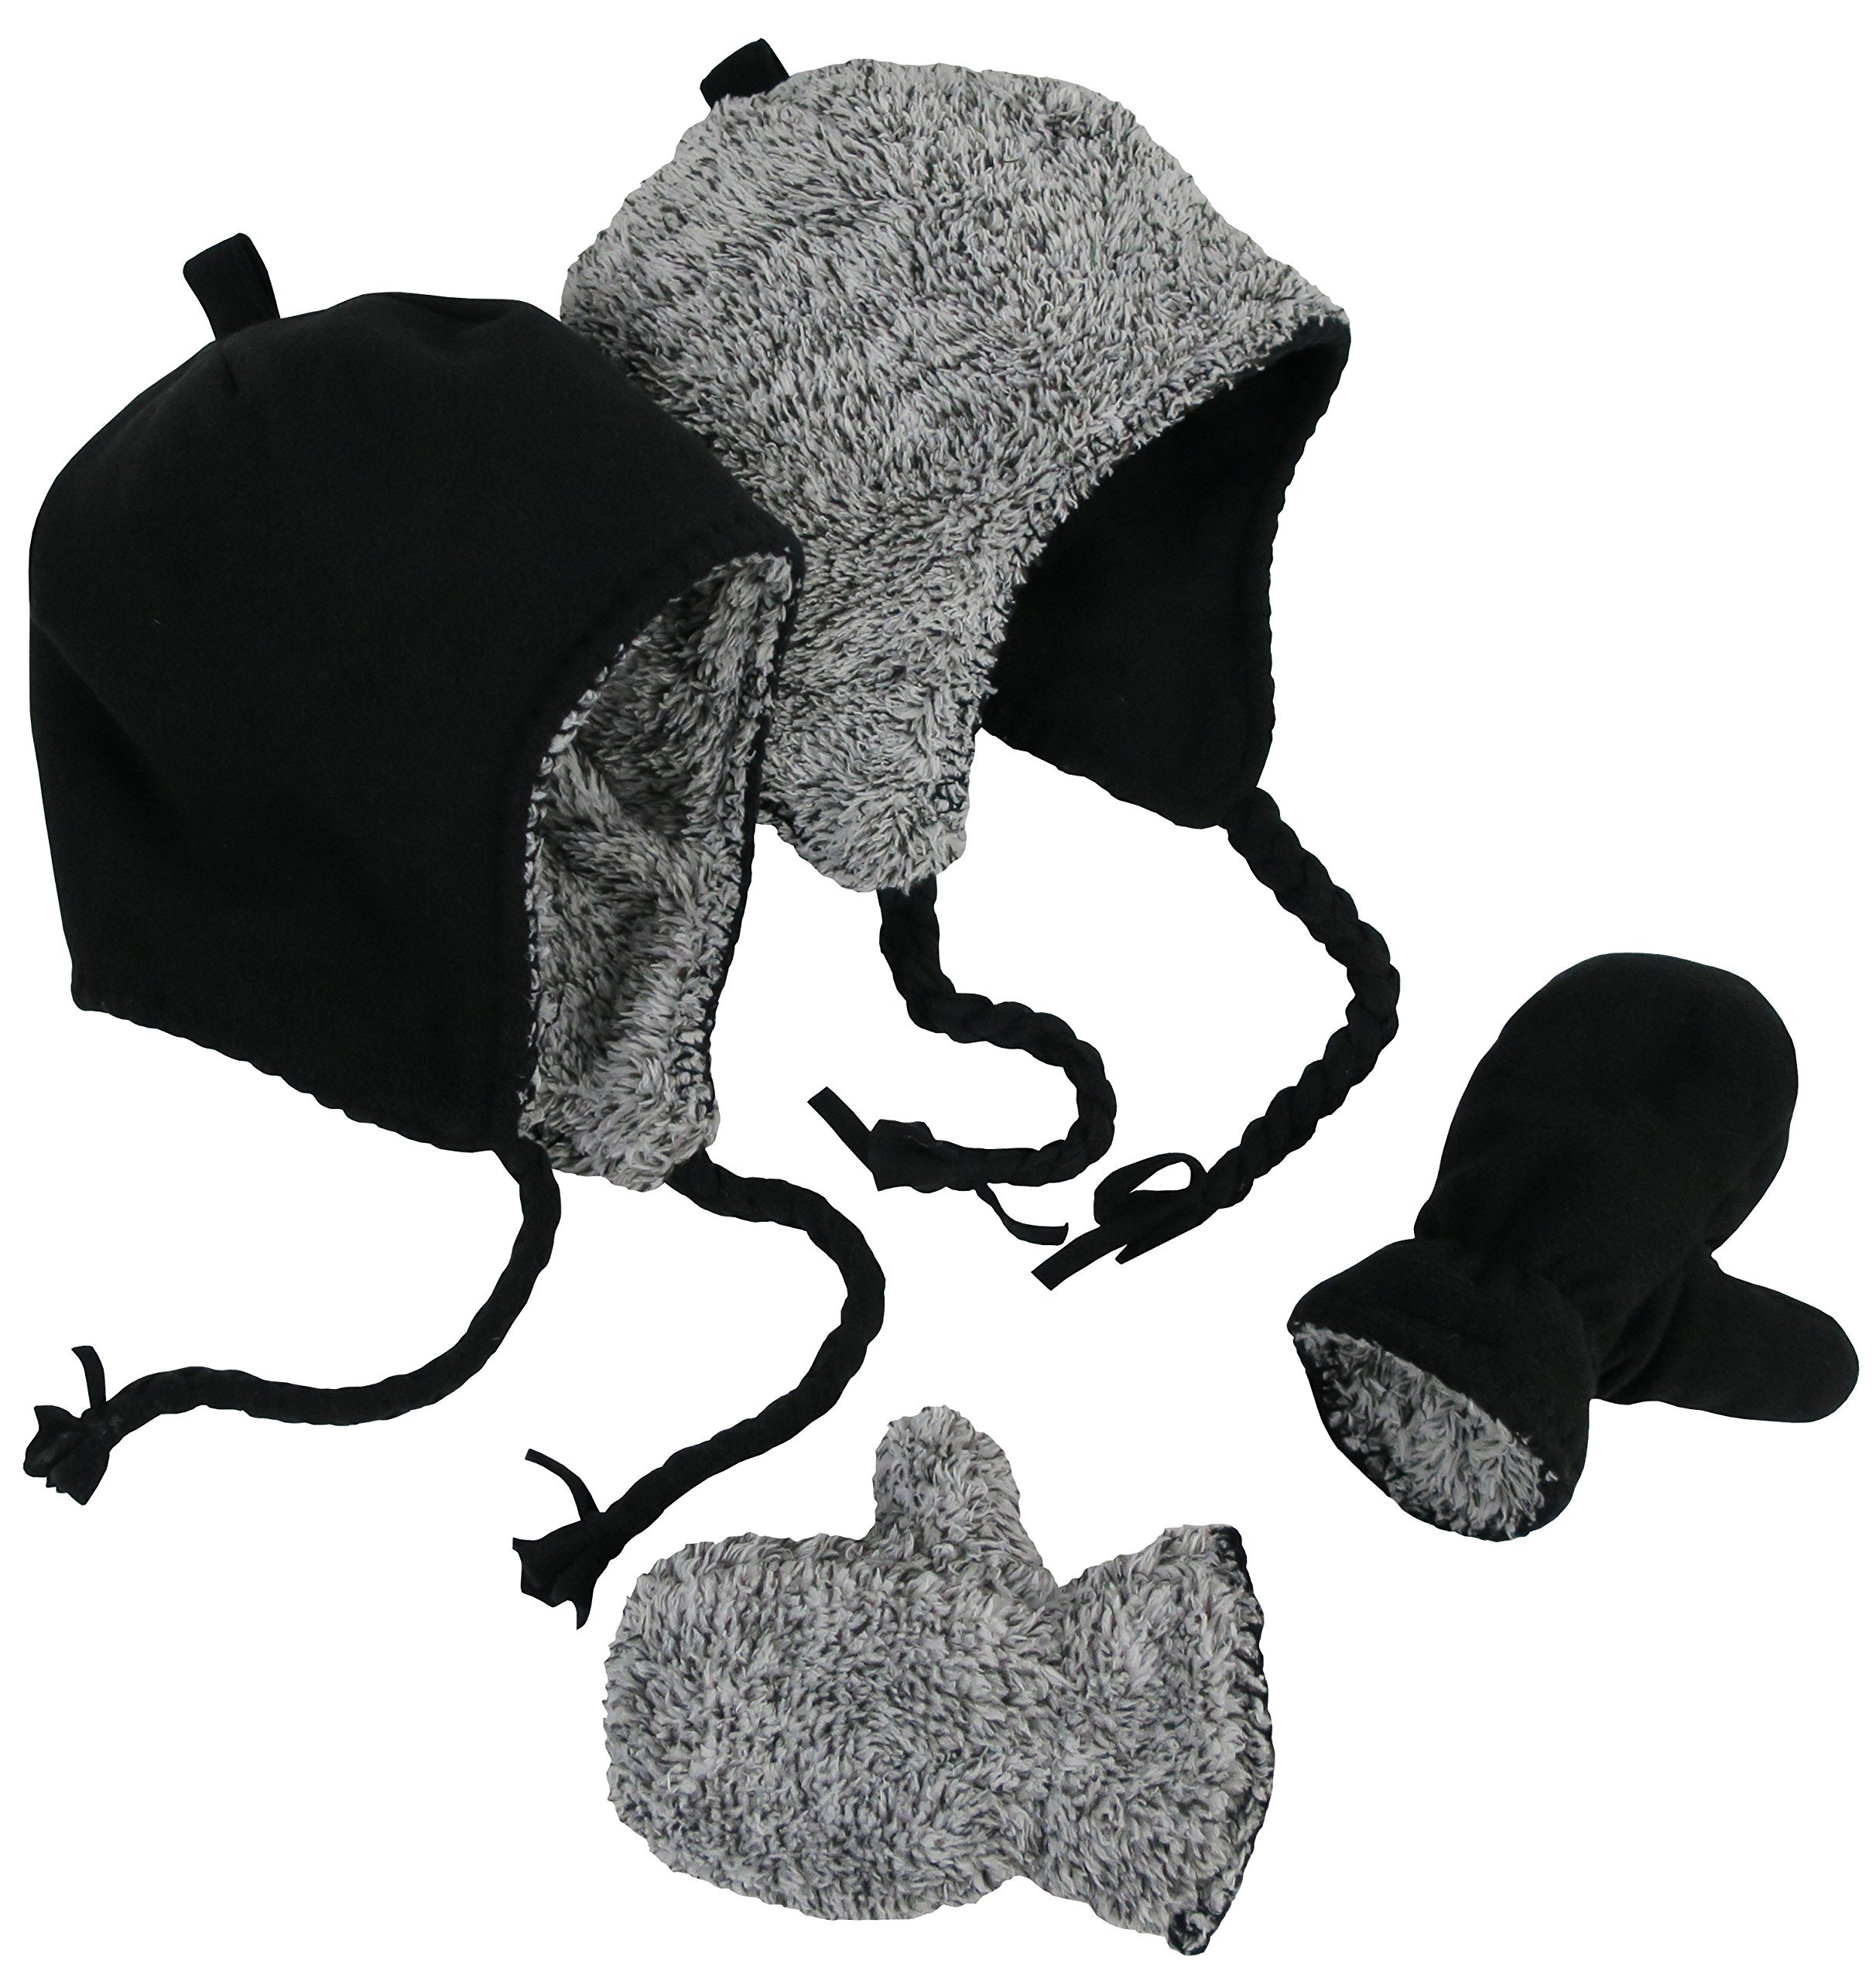 N'Ice Caps Little Kids and Infants Reversible Hat and Mittens Fleece Skater Set (2-3 Years, Black Solid/Black-White Sherpa)